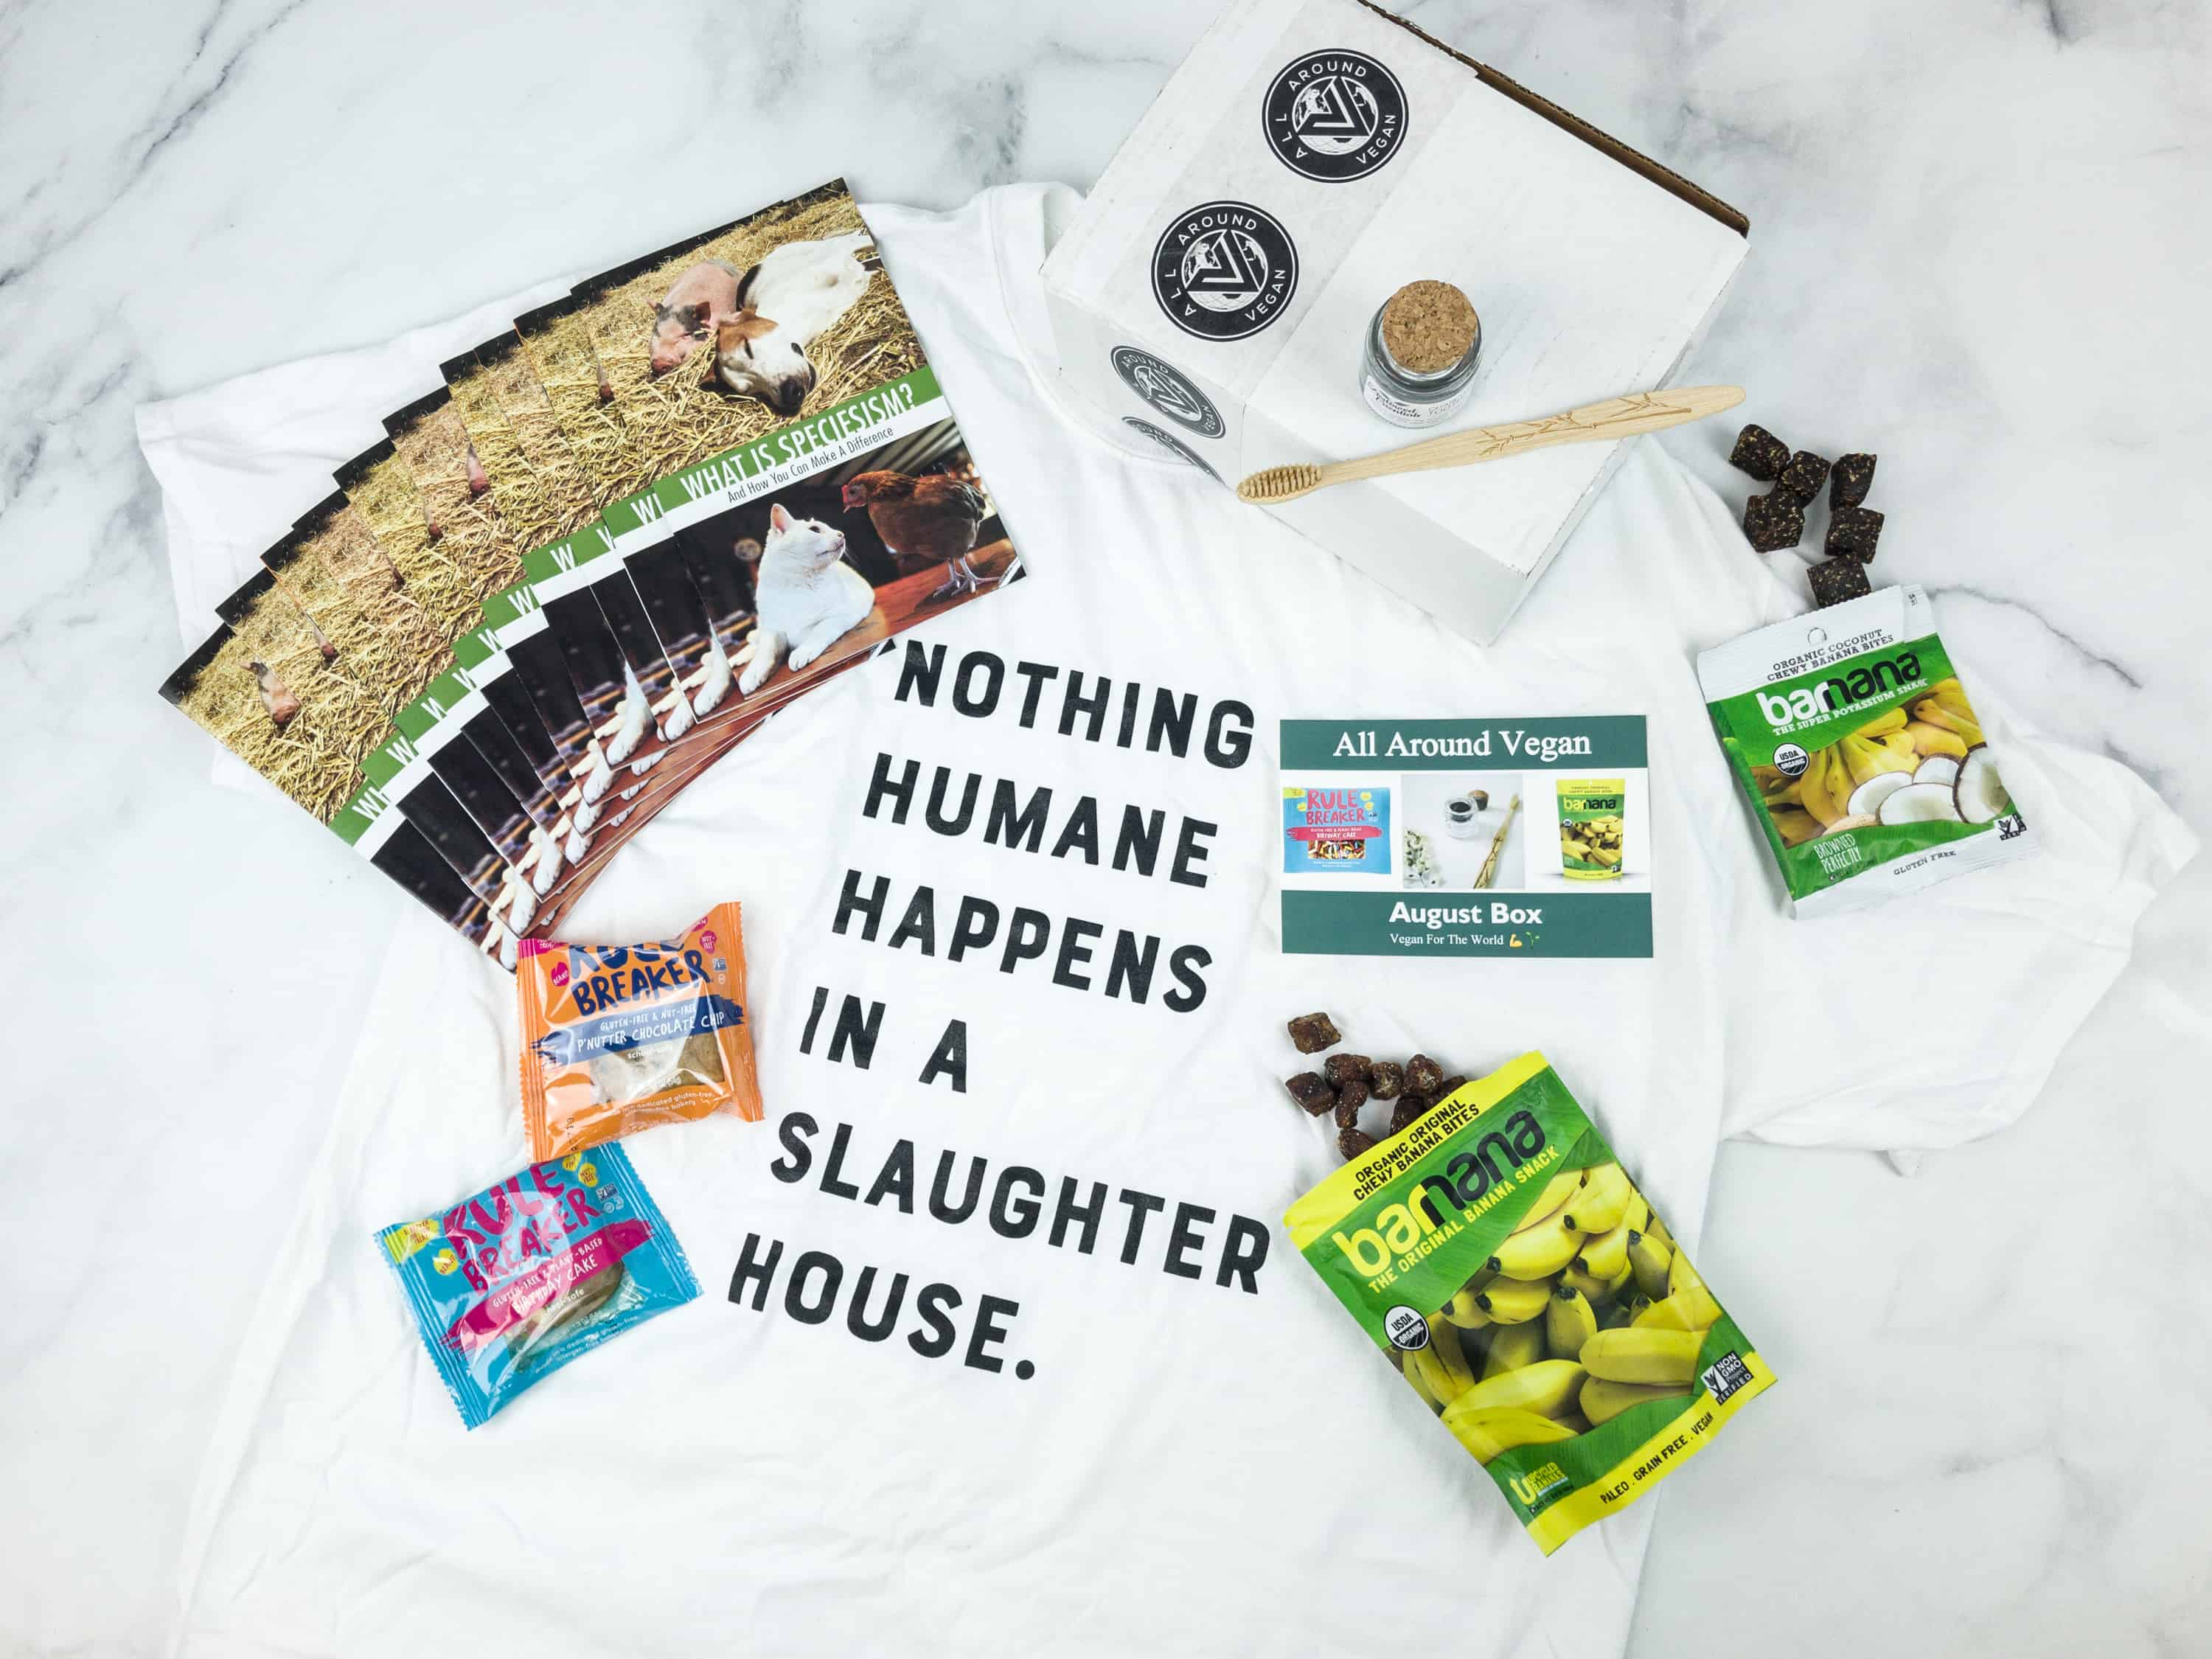 All Around Vegan Box August 2018 Subscription Box Review + Coupon